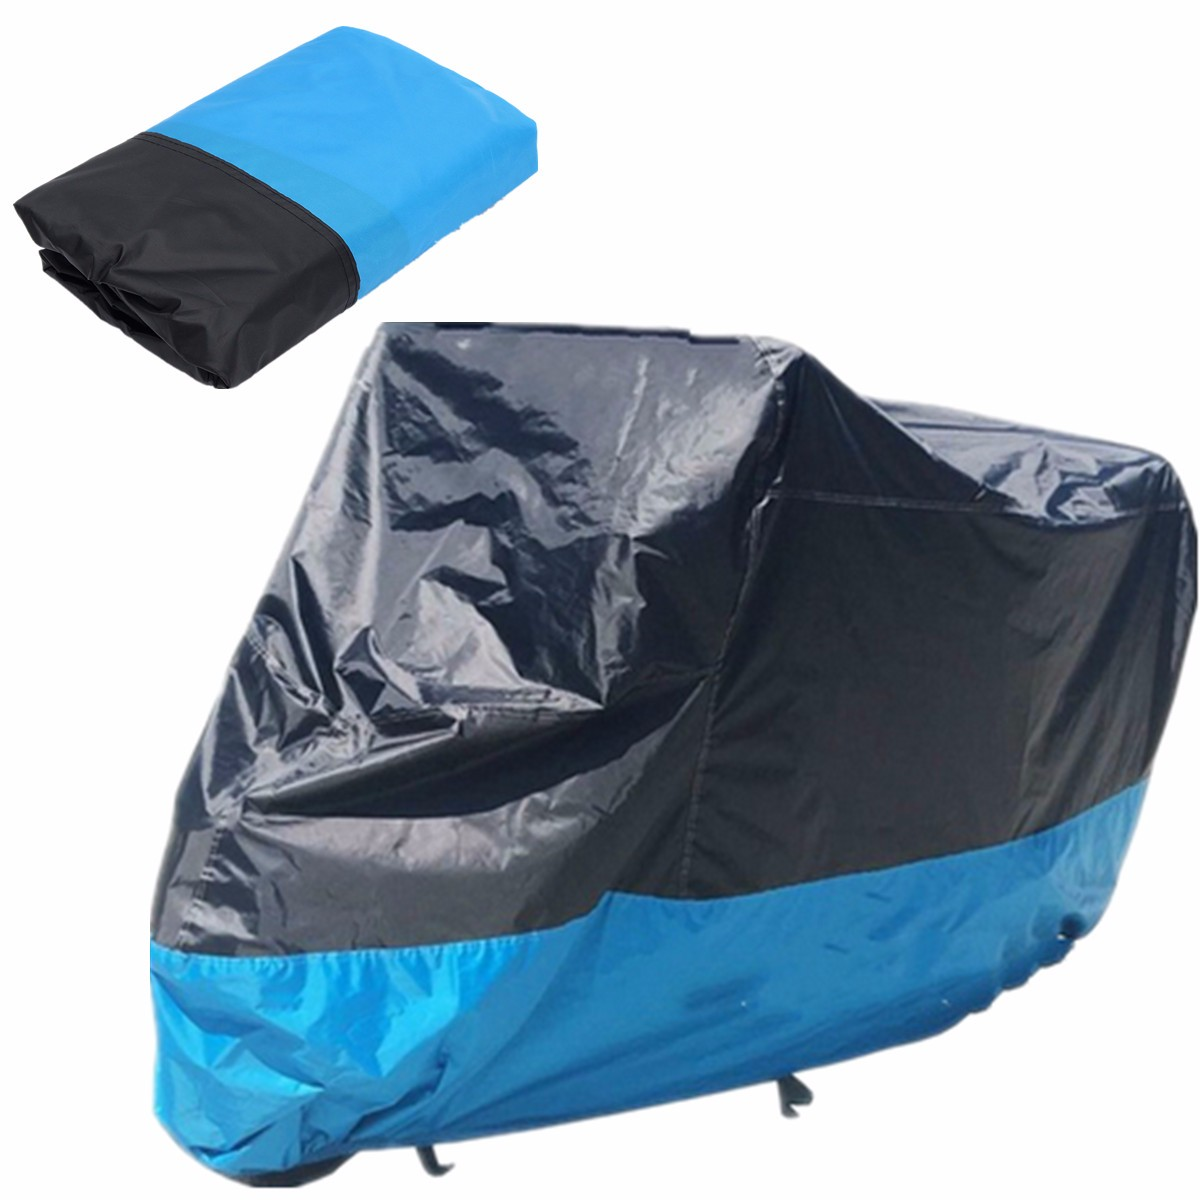 Book Cover Black Xl : Motorcycle waterproof cover scooter rain dust blue